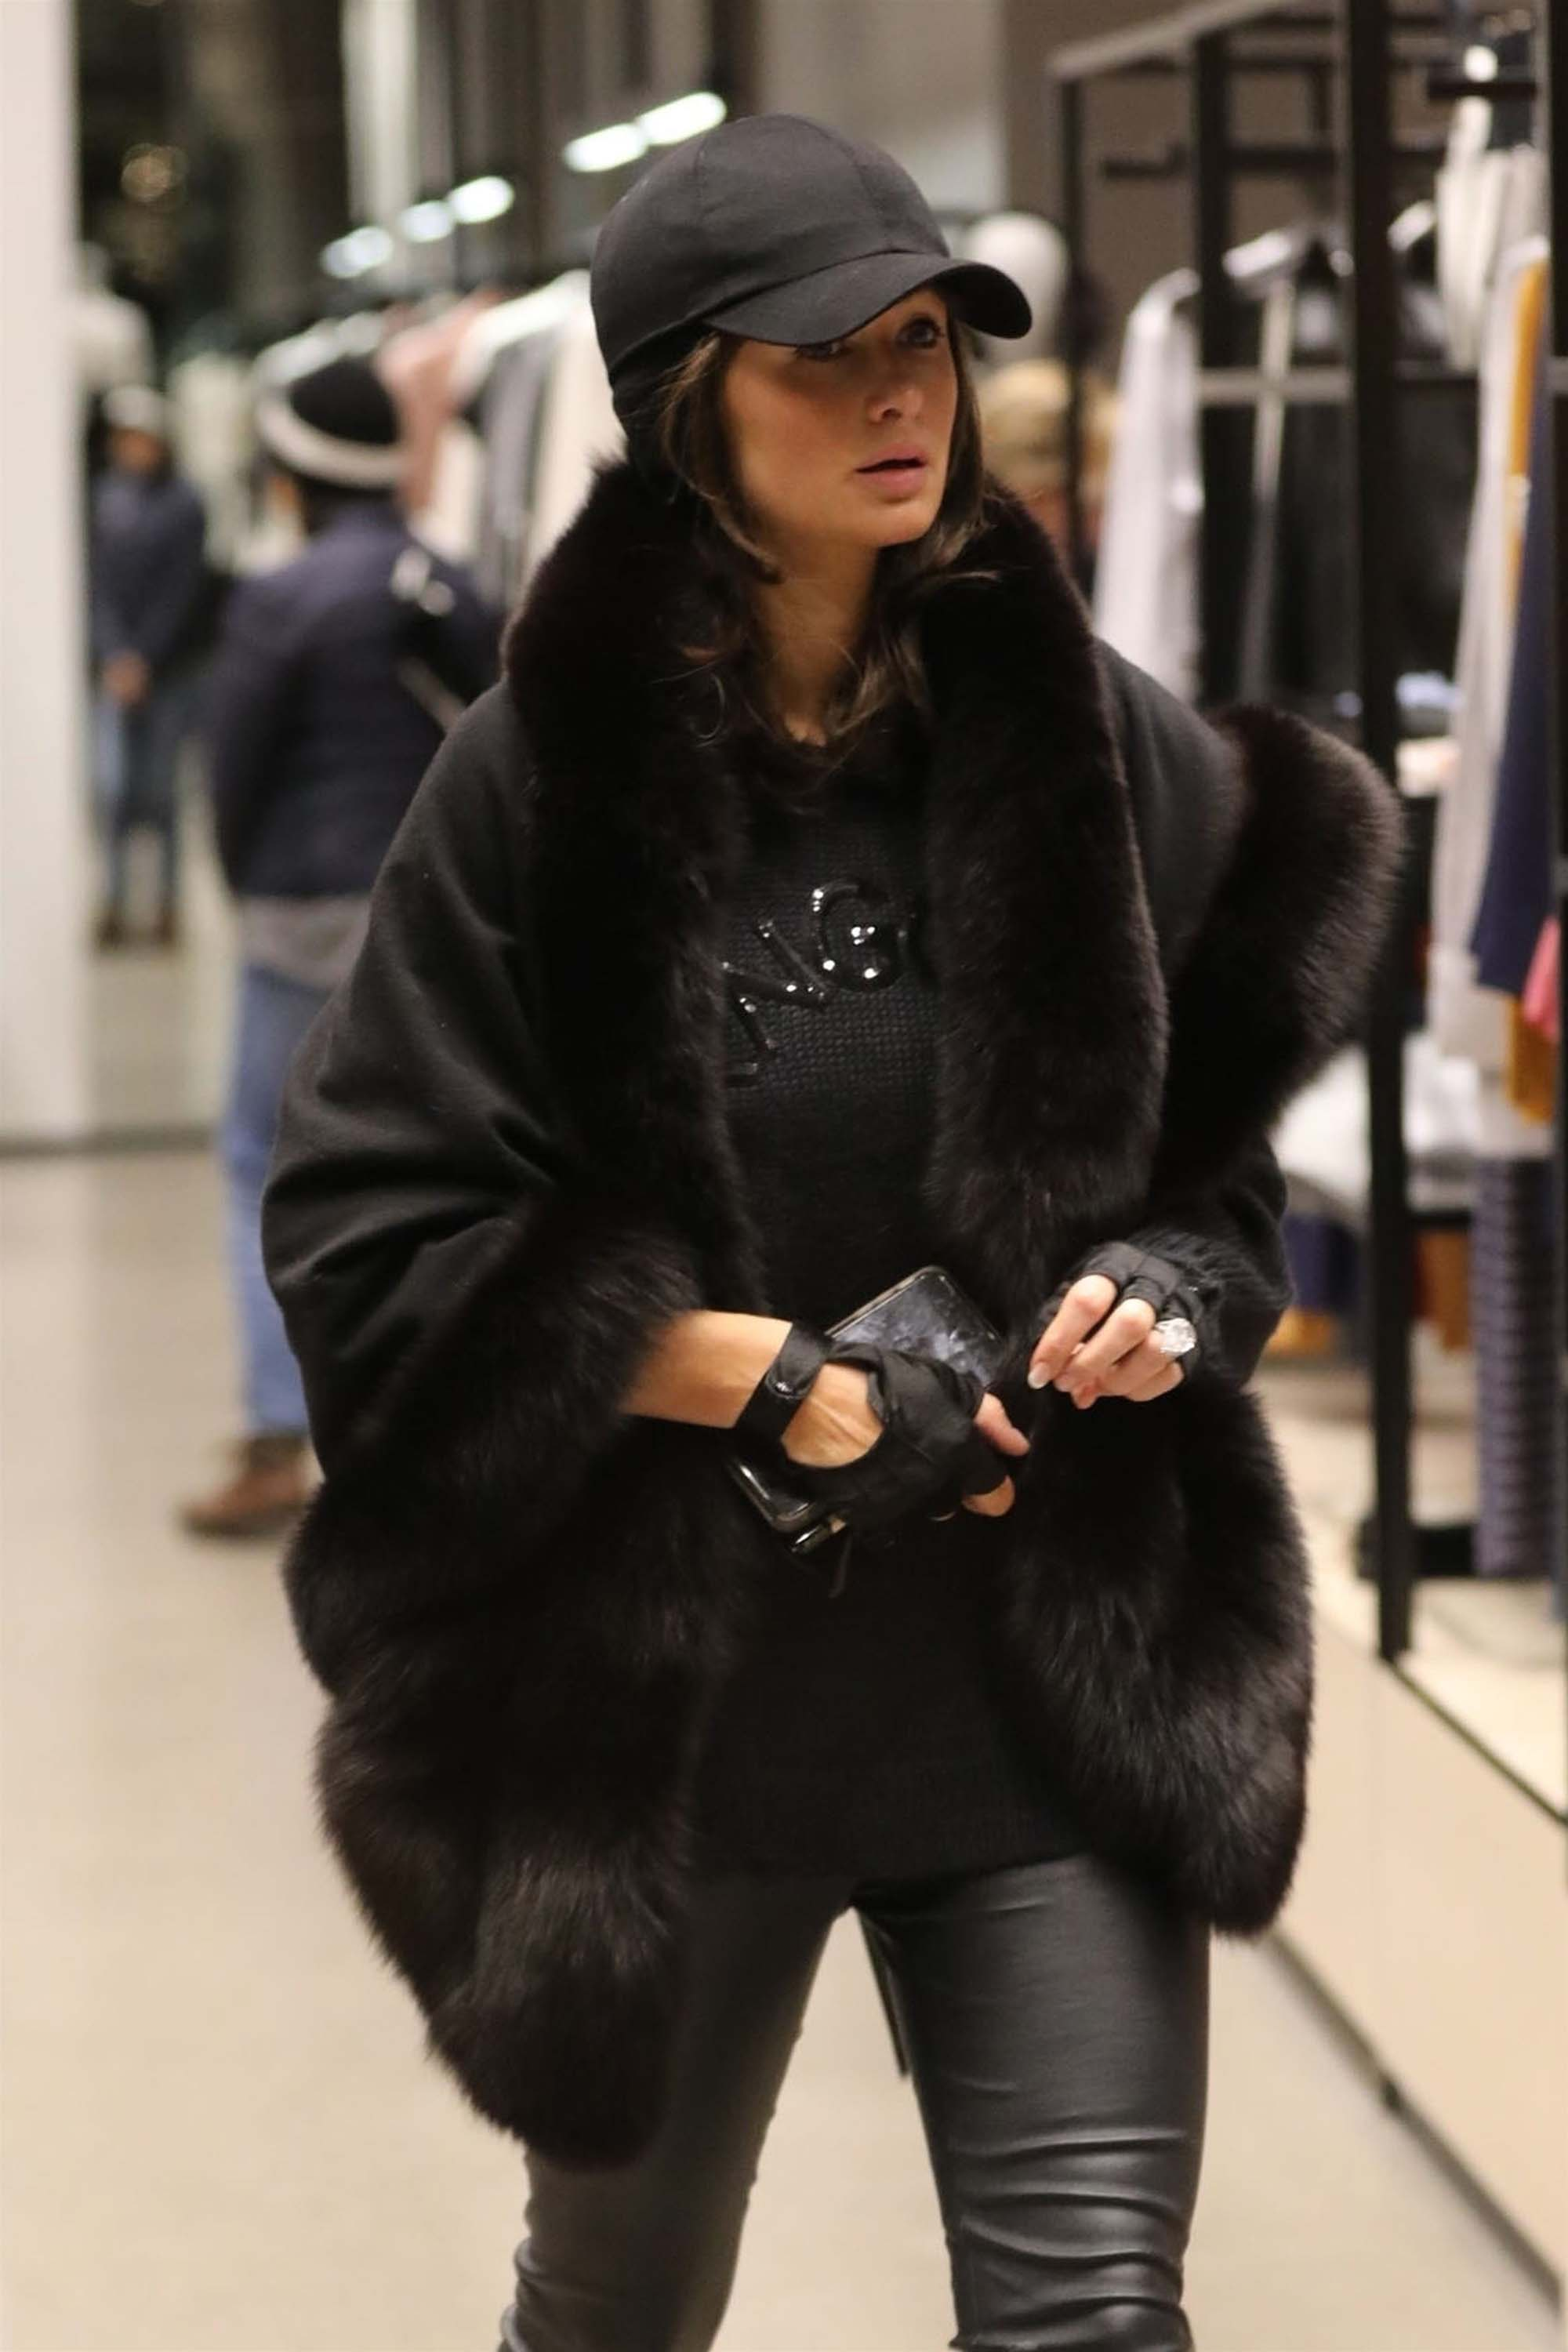 Paris Hilton spotted out doing some night time shopping